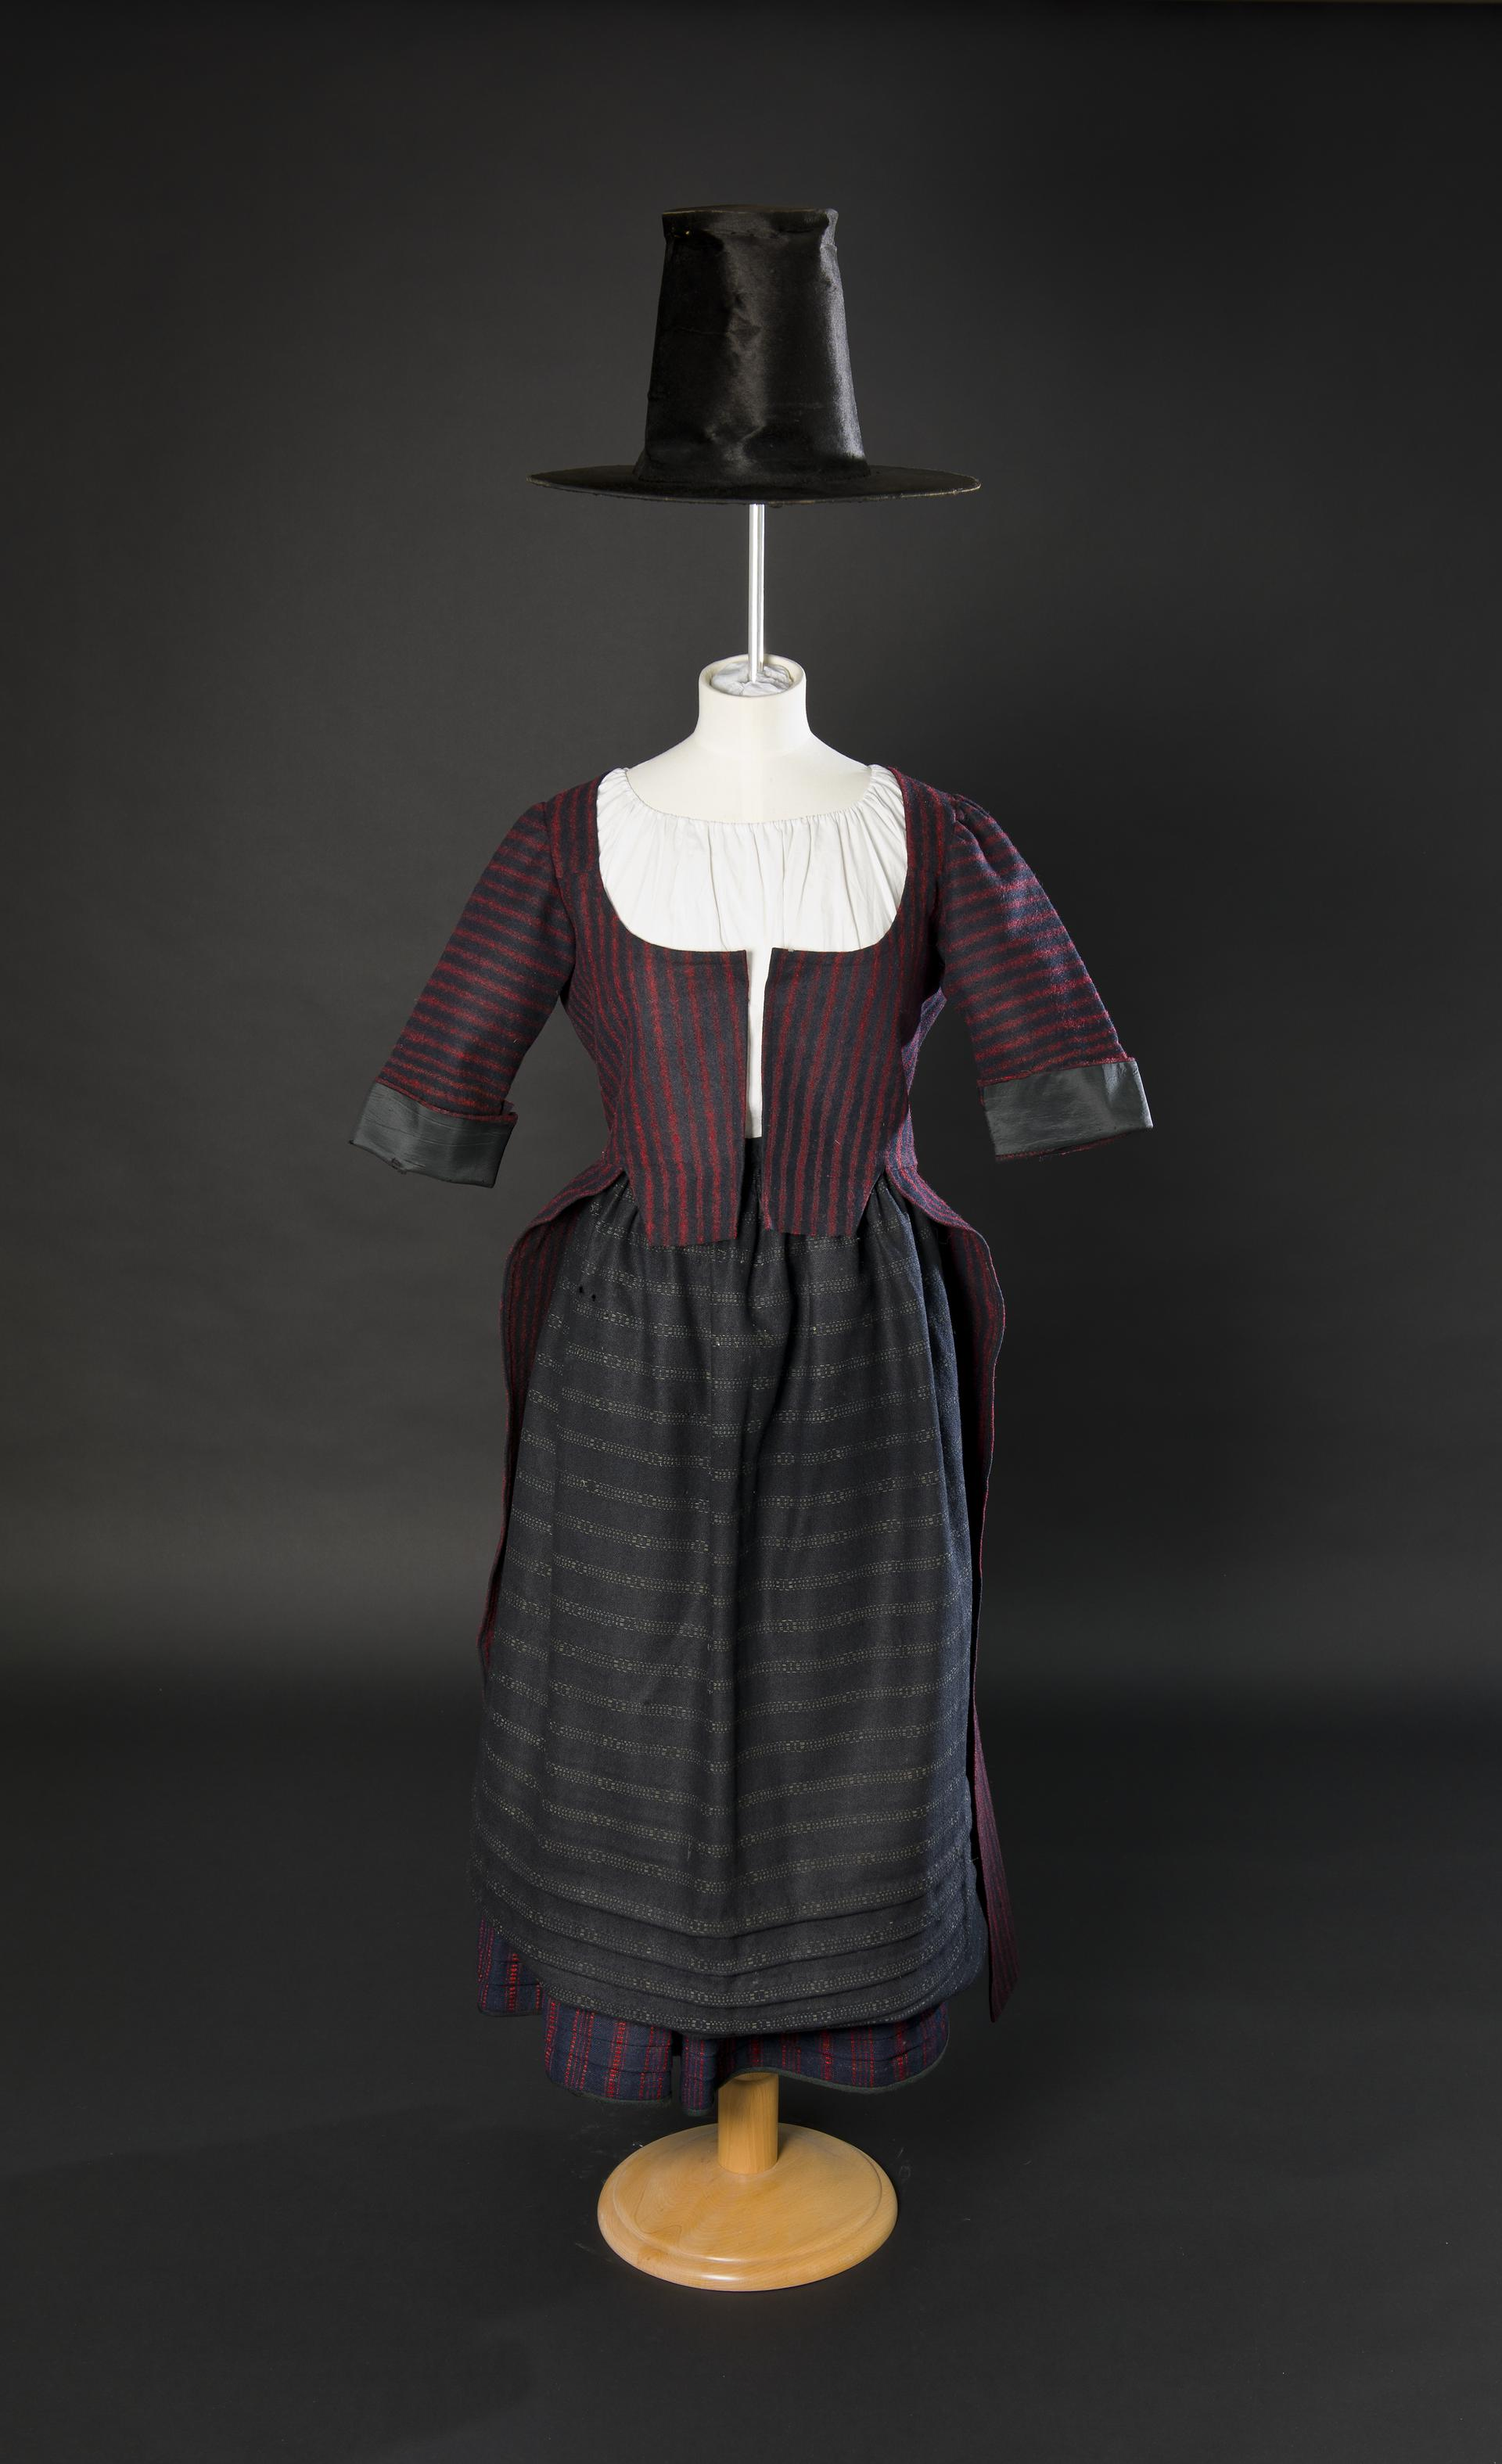 Open the image &lsquobedgown, Welsh costume petticoat, Welsh costume apron, Welsh costume hat'